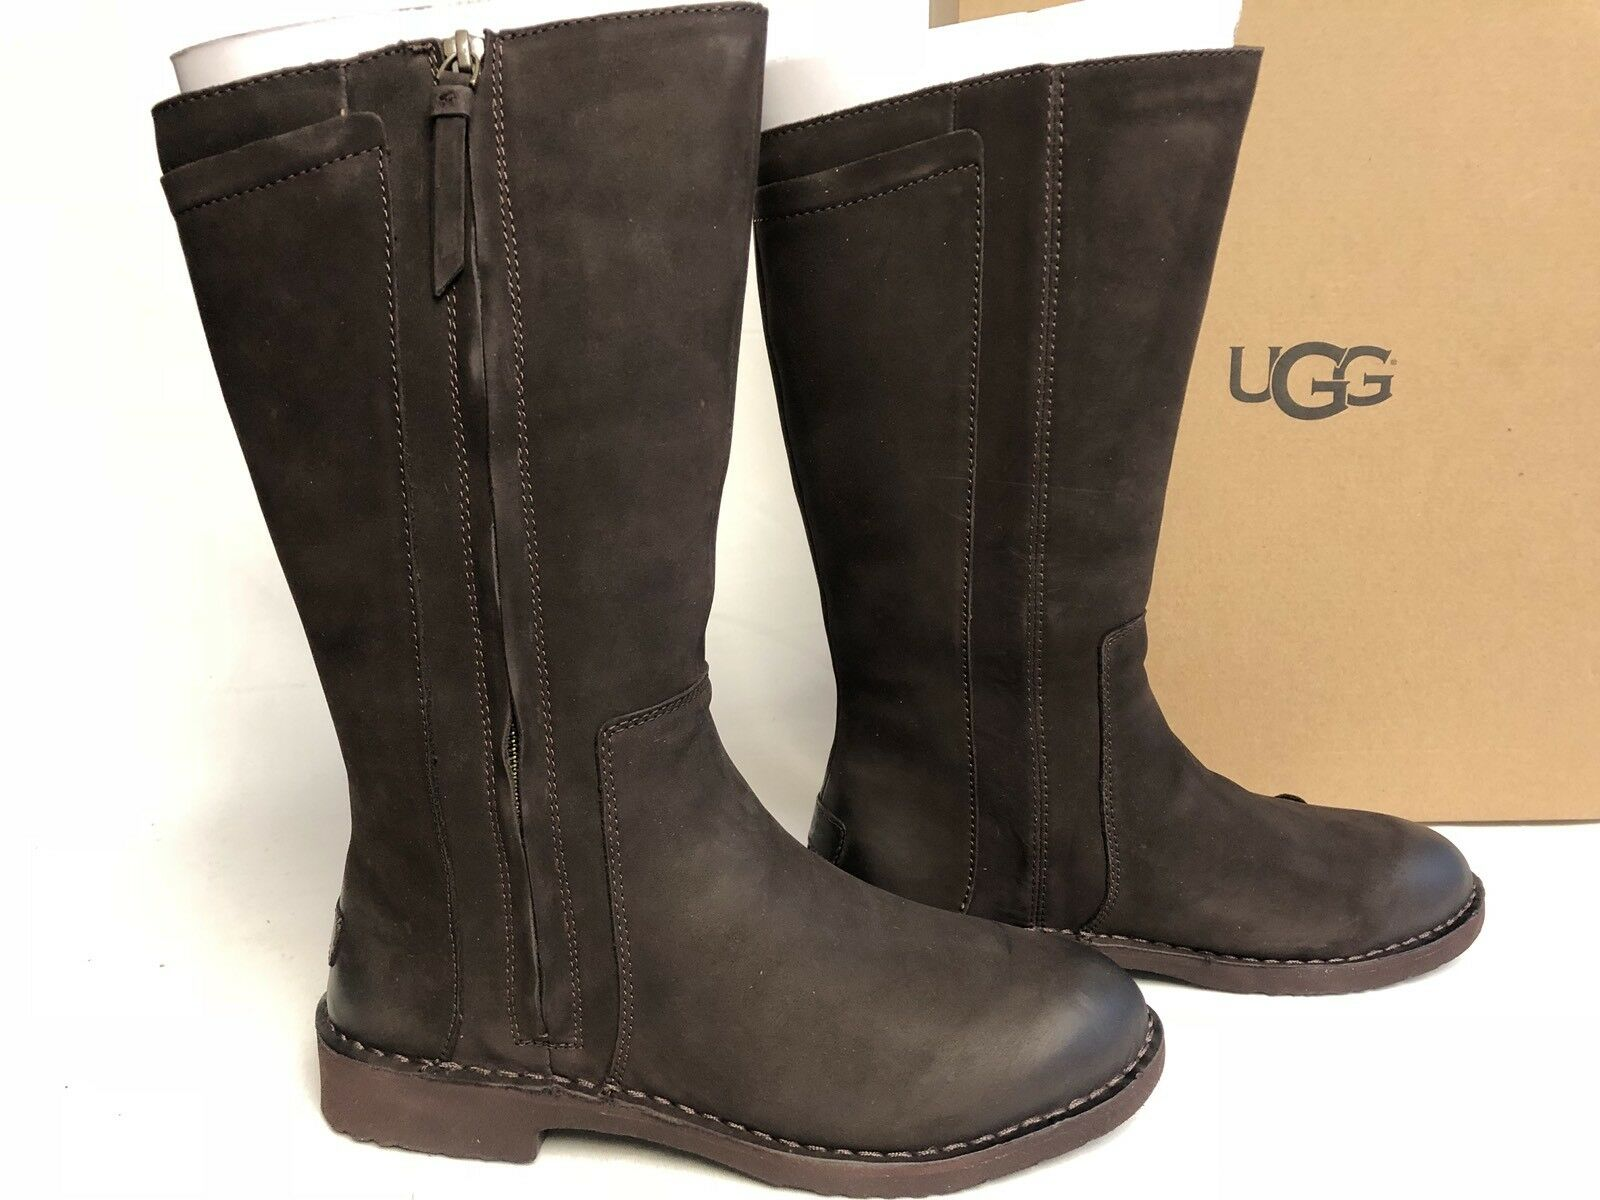 d3c367836b7 Ugg Australia Elly Stout Brown Tall Nubuck Boots 1017505 Wool Lined sizes  womens